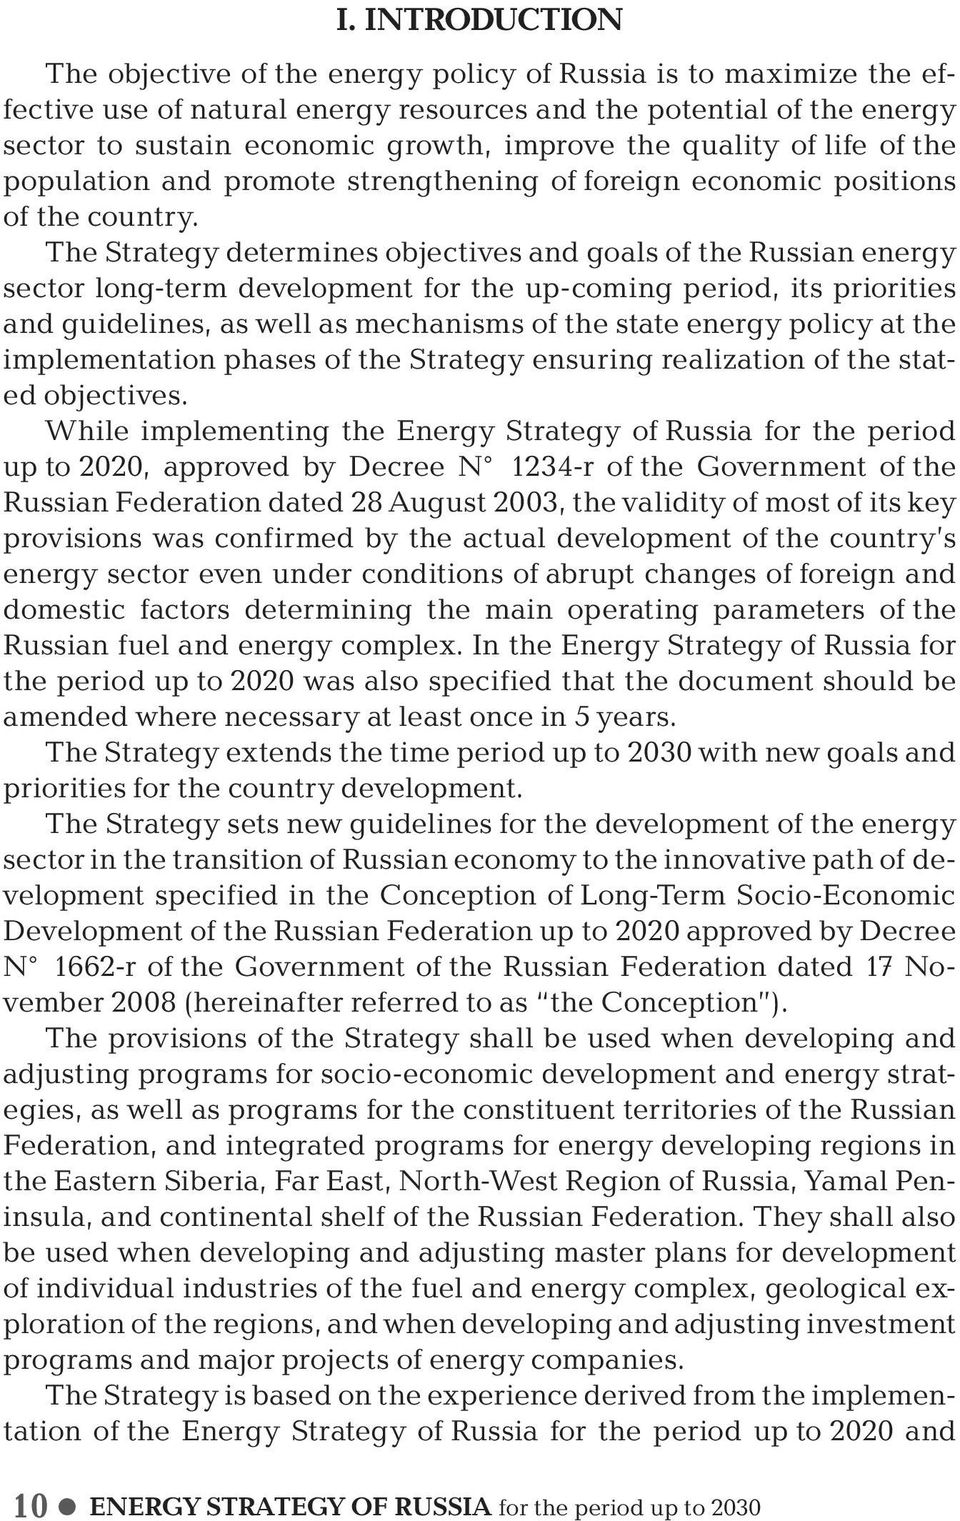 The Strategy determines objectives and goals of the Russian energy sector long-term development for the up-coming period, its priorities and guidelines, as well as mechanisms of the state energy